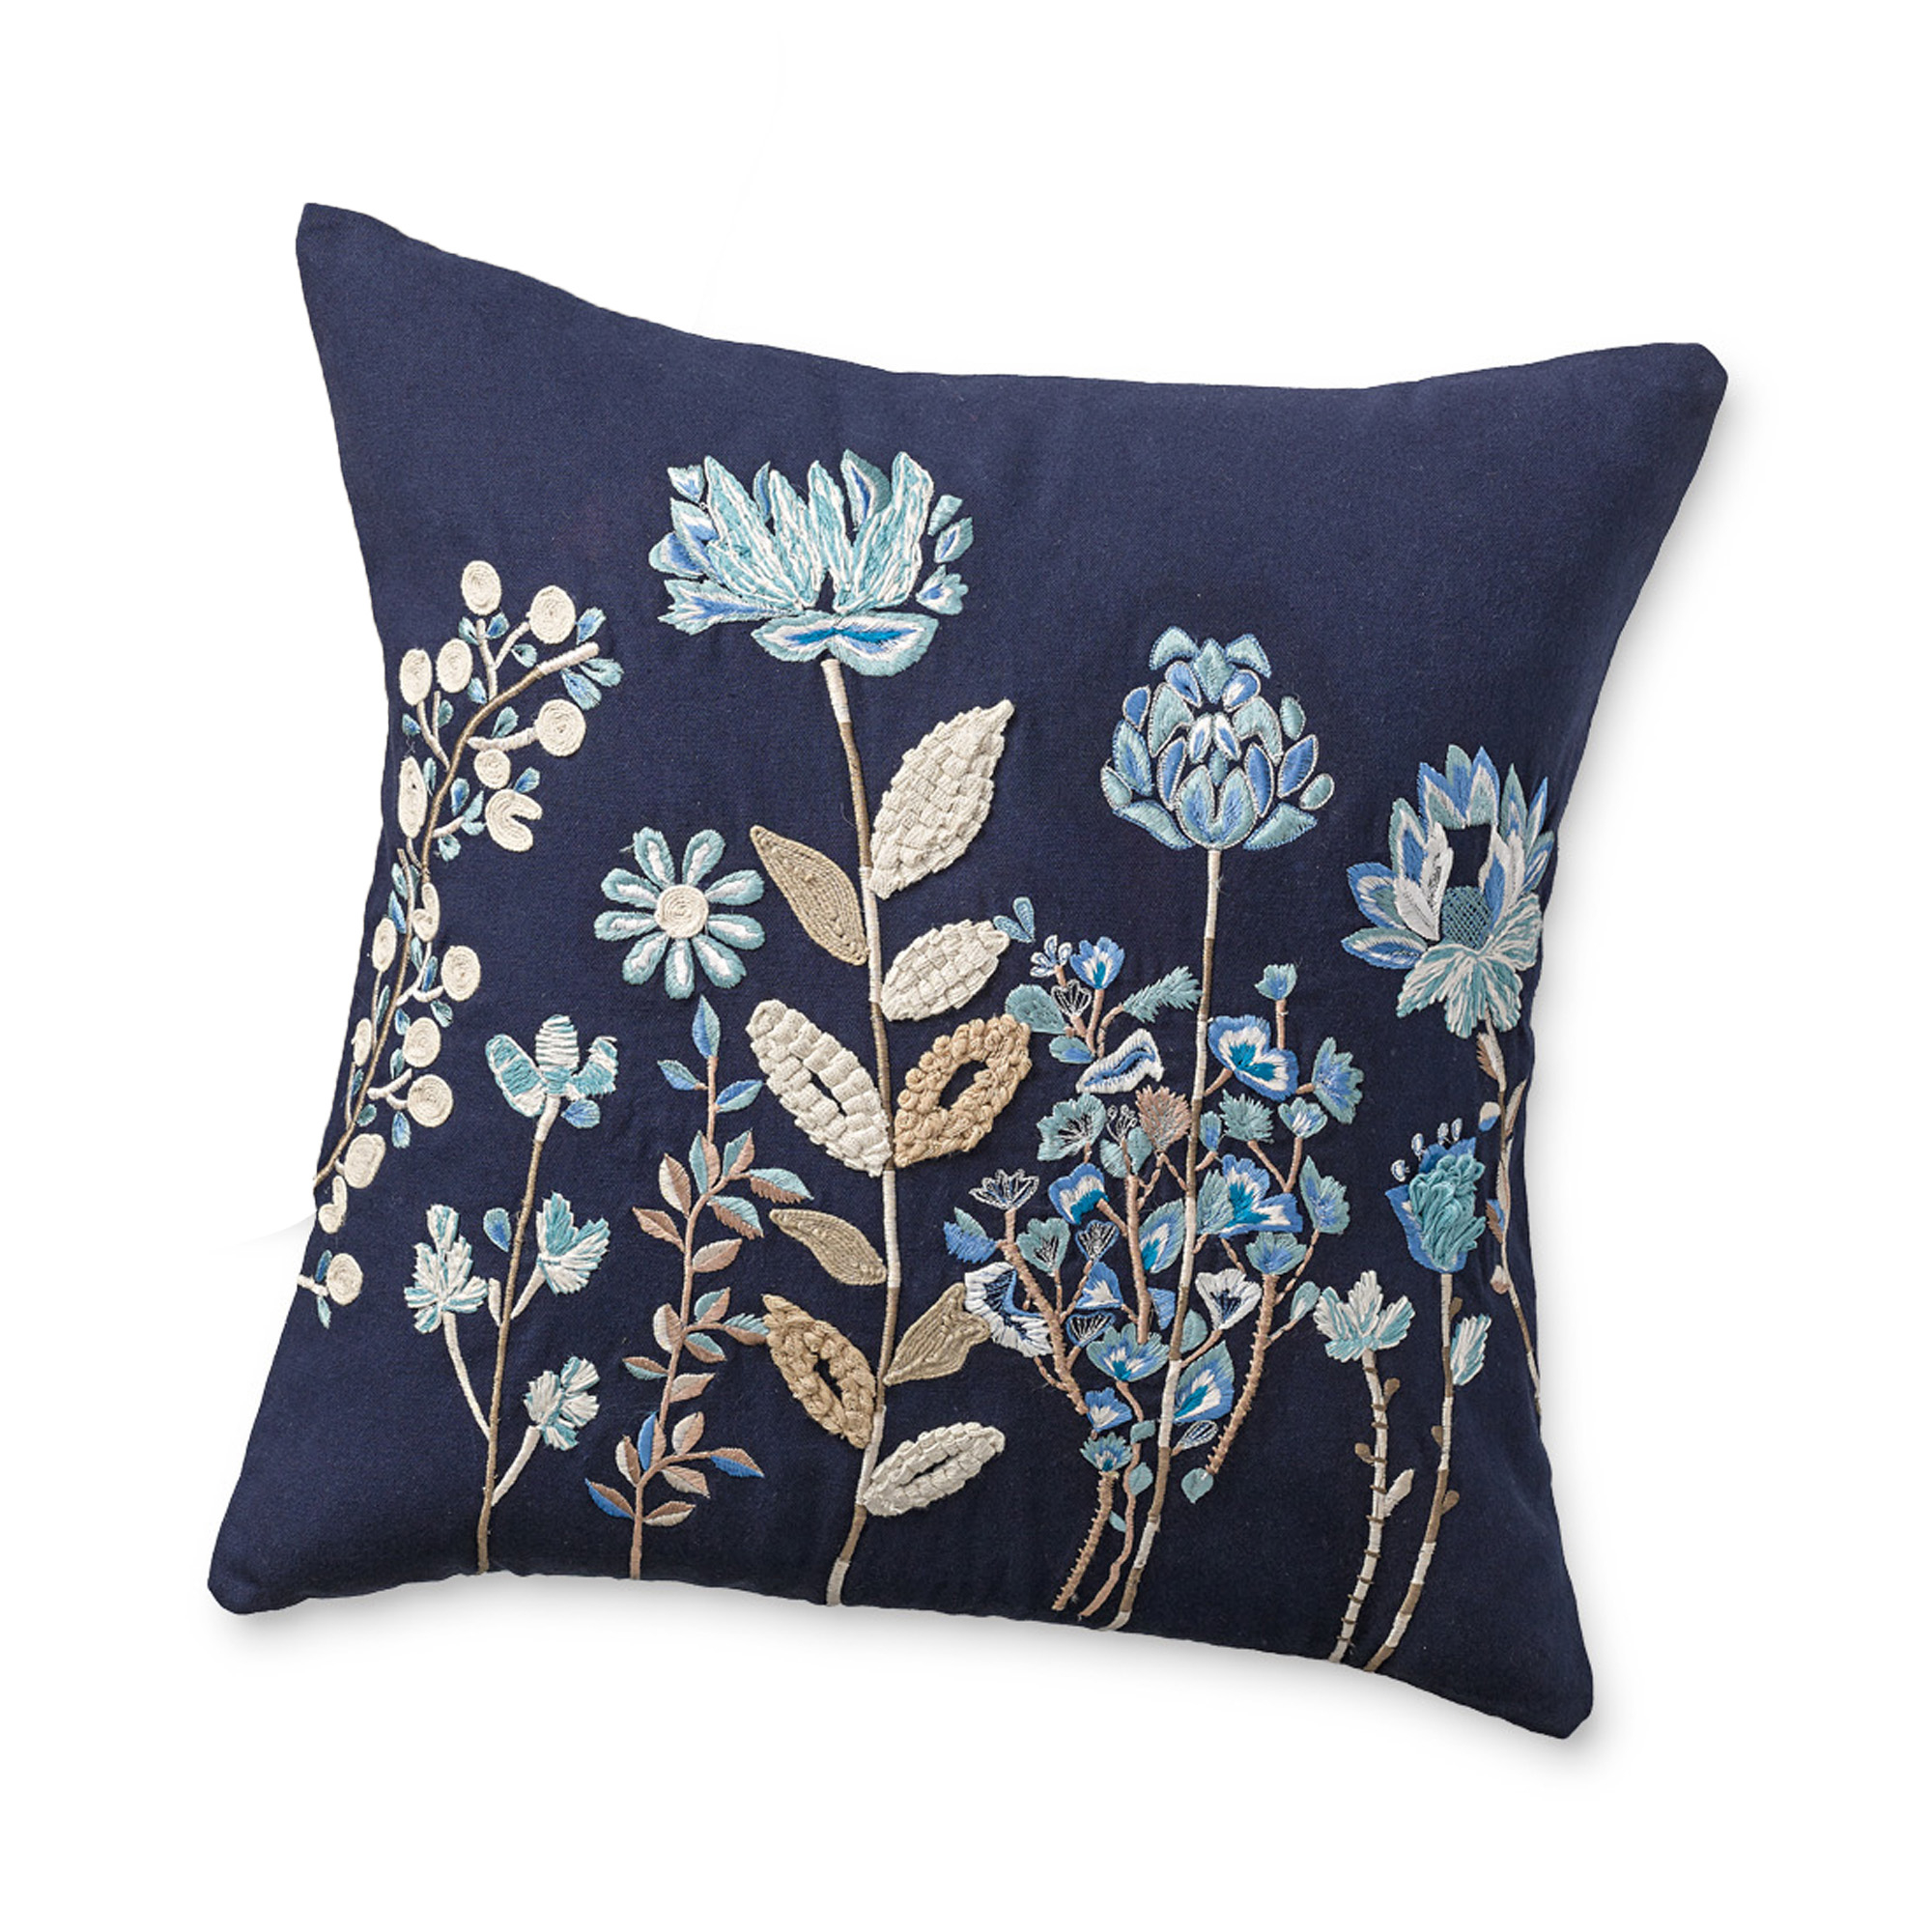 Bennington Handstitched Pillow, Blue